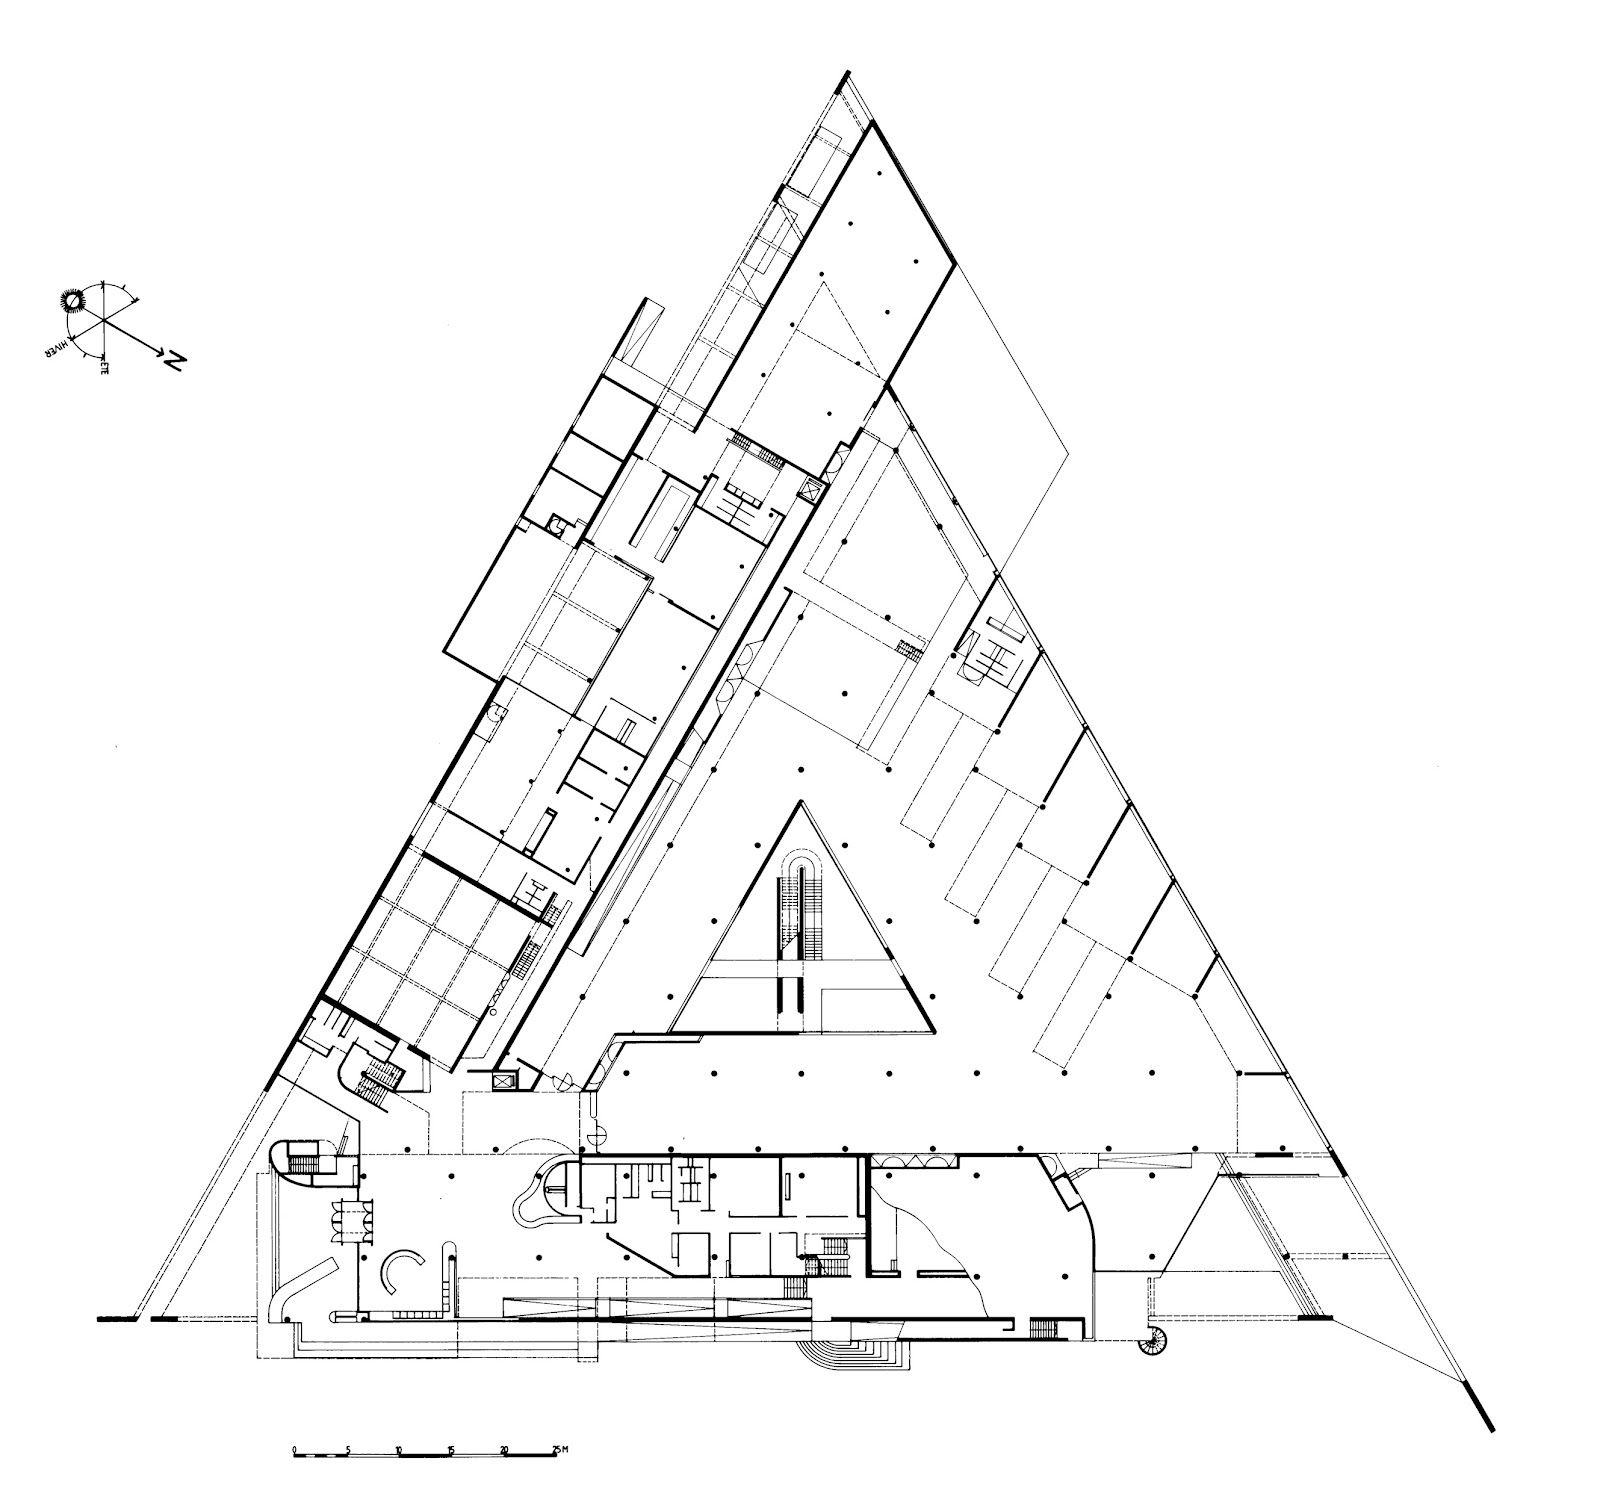 The archaeological museum of arles henri ciriani for Triangular house floor plans